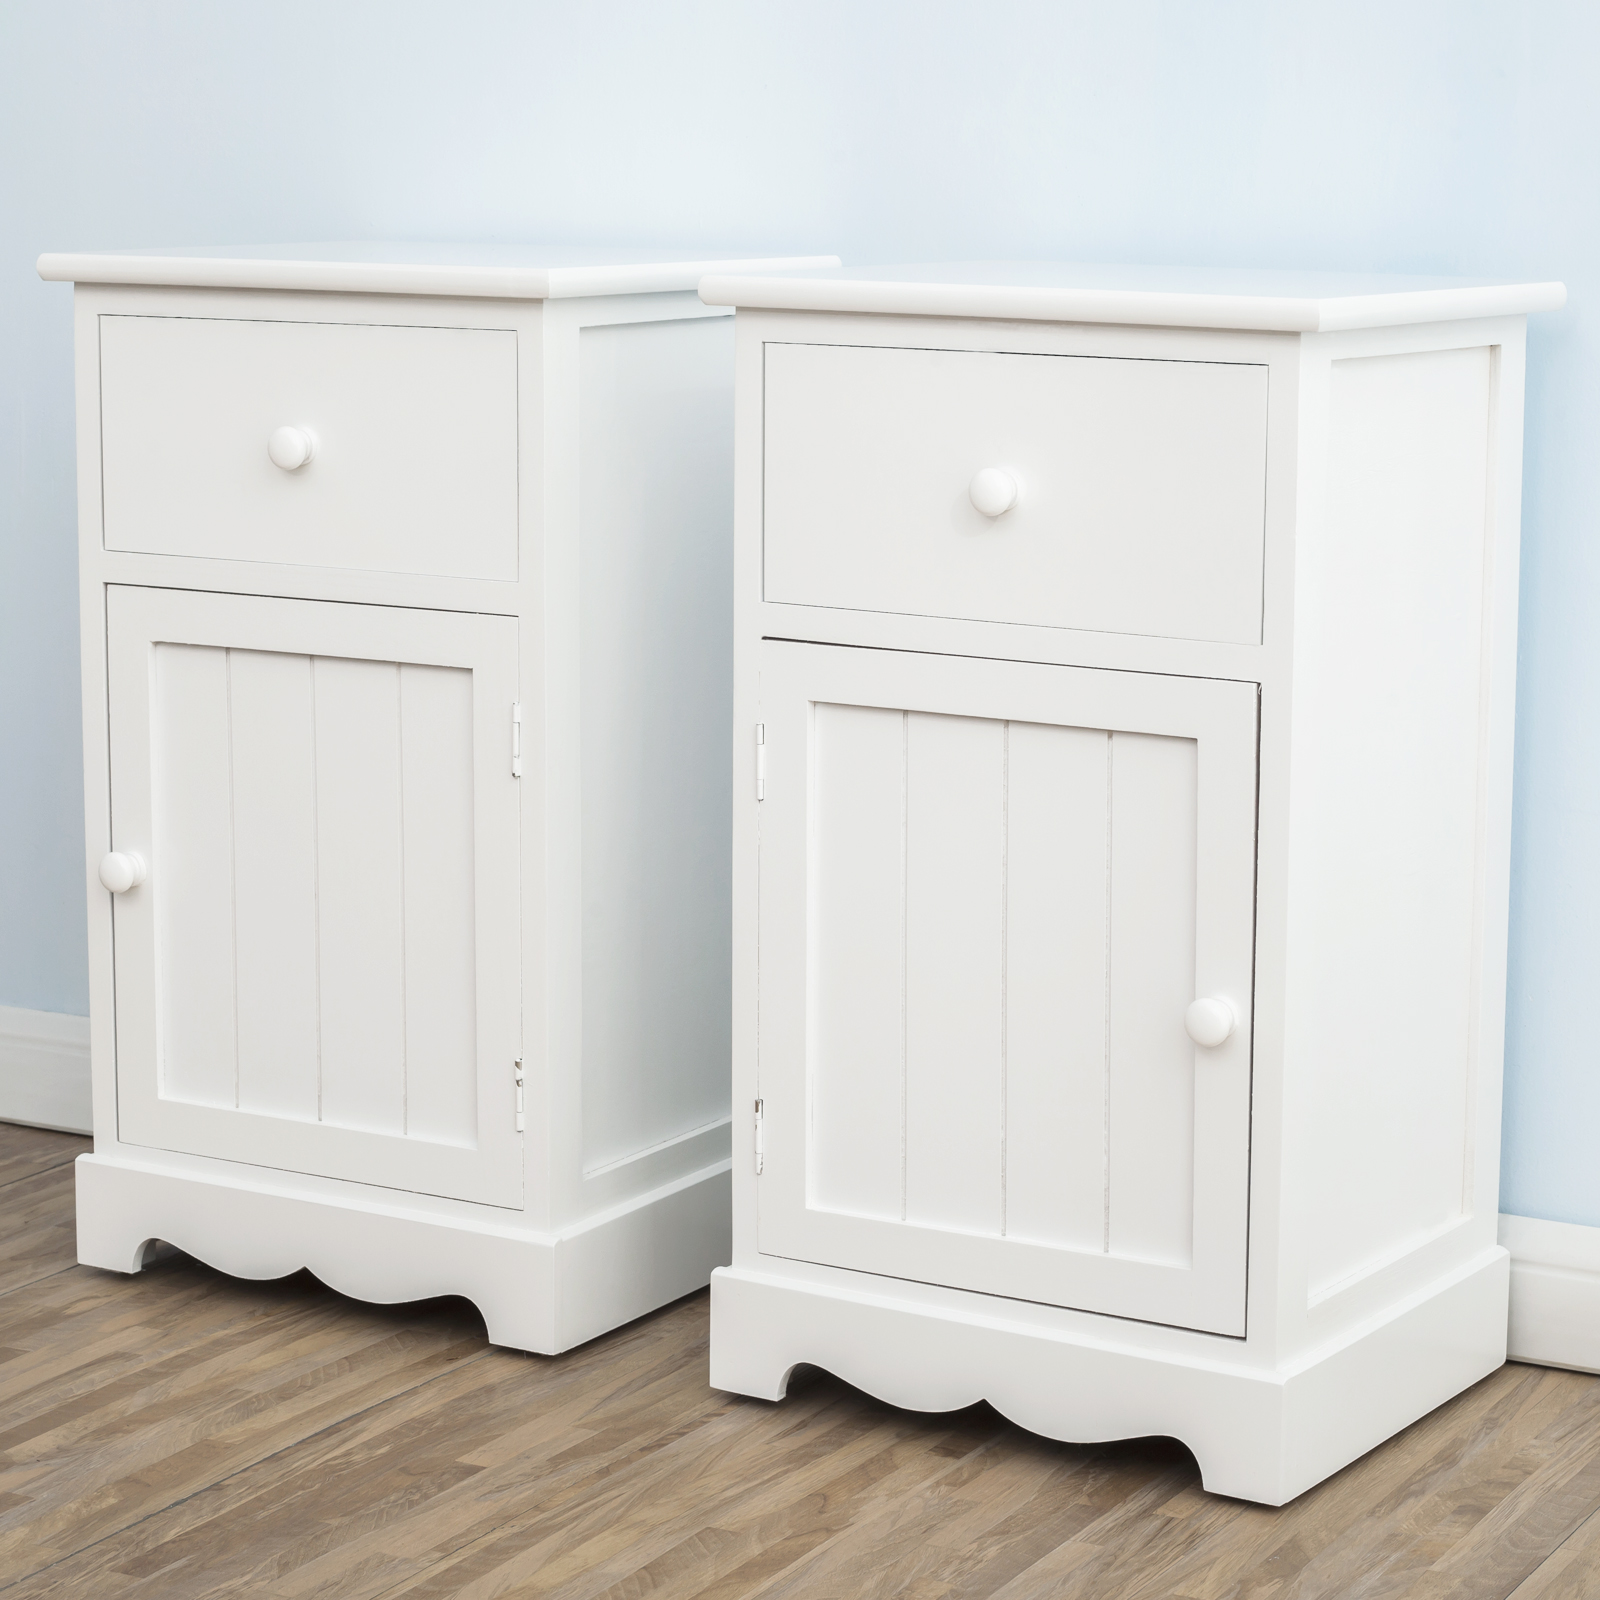 pair of bedside table unit storage cabinet w drawers cupboards groove door ebay. Black Bedroom Furniture Sets. Home Design Ideas